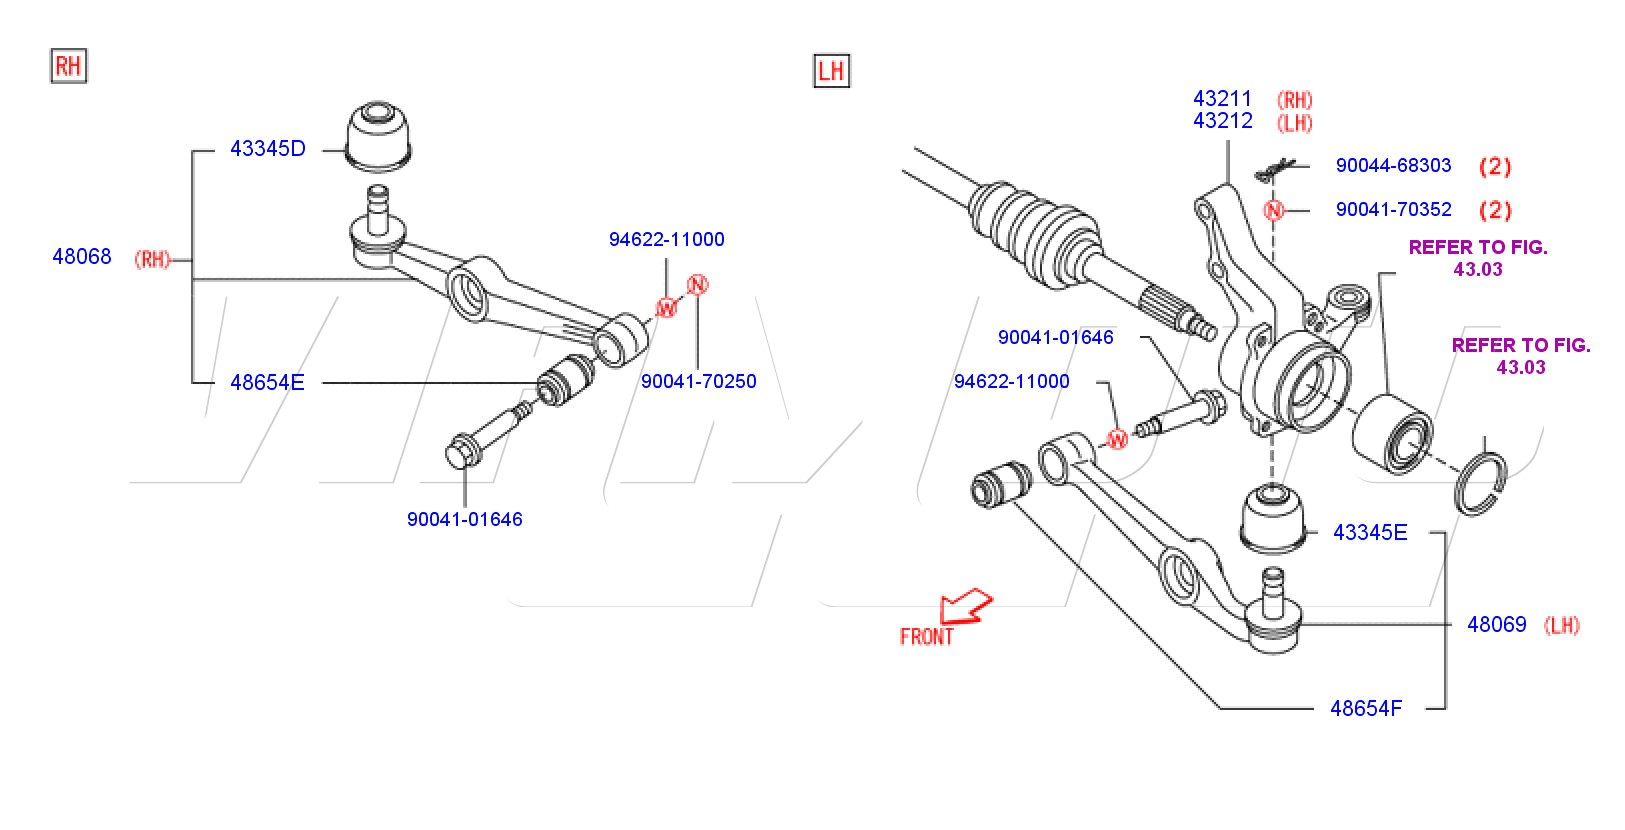 Daihatsu Brakes Diagram - Wiring Diagrams ROCK